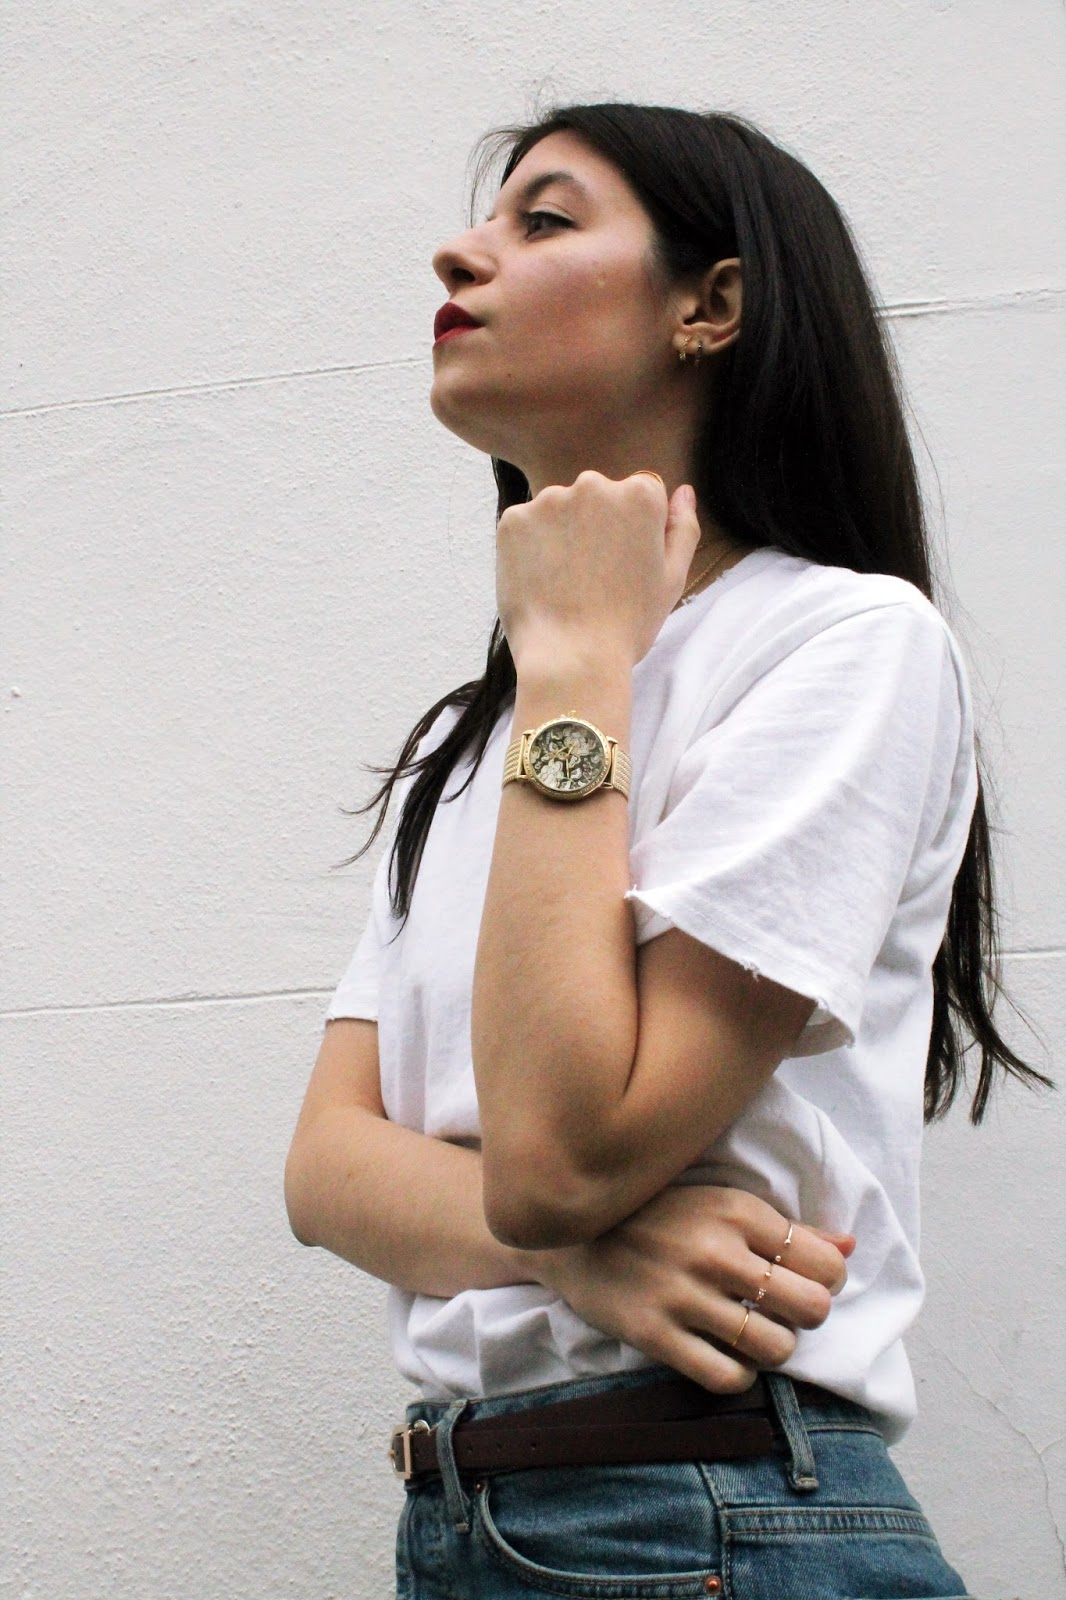 denim, white t shirt, winter outfit, red lips, fashion blogger, london blogger, microinfluencer, guess watch, giveaway